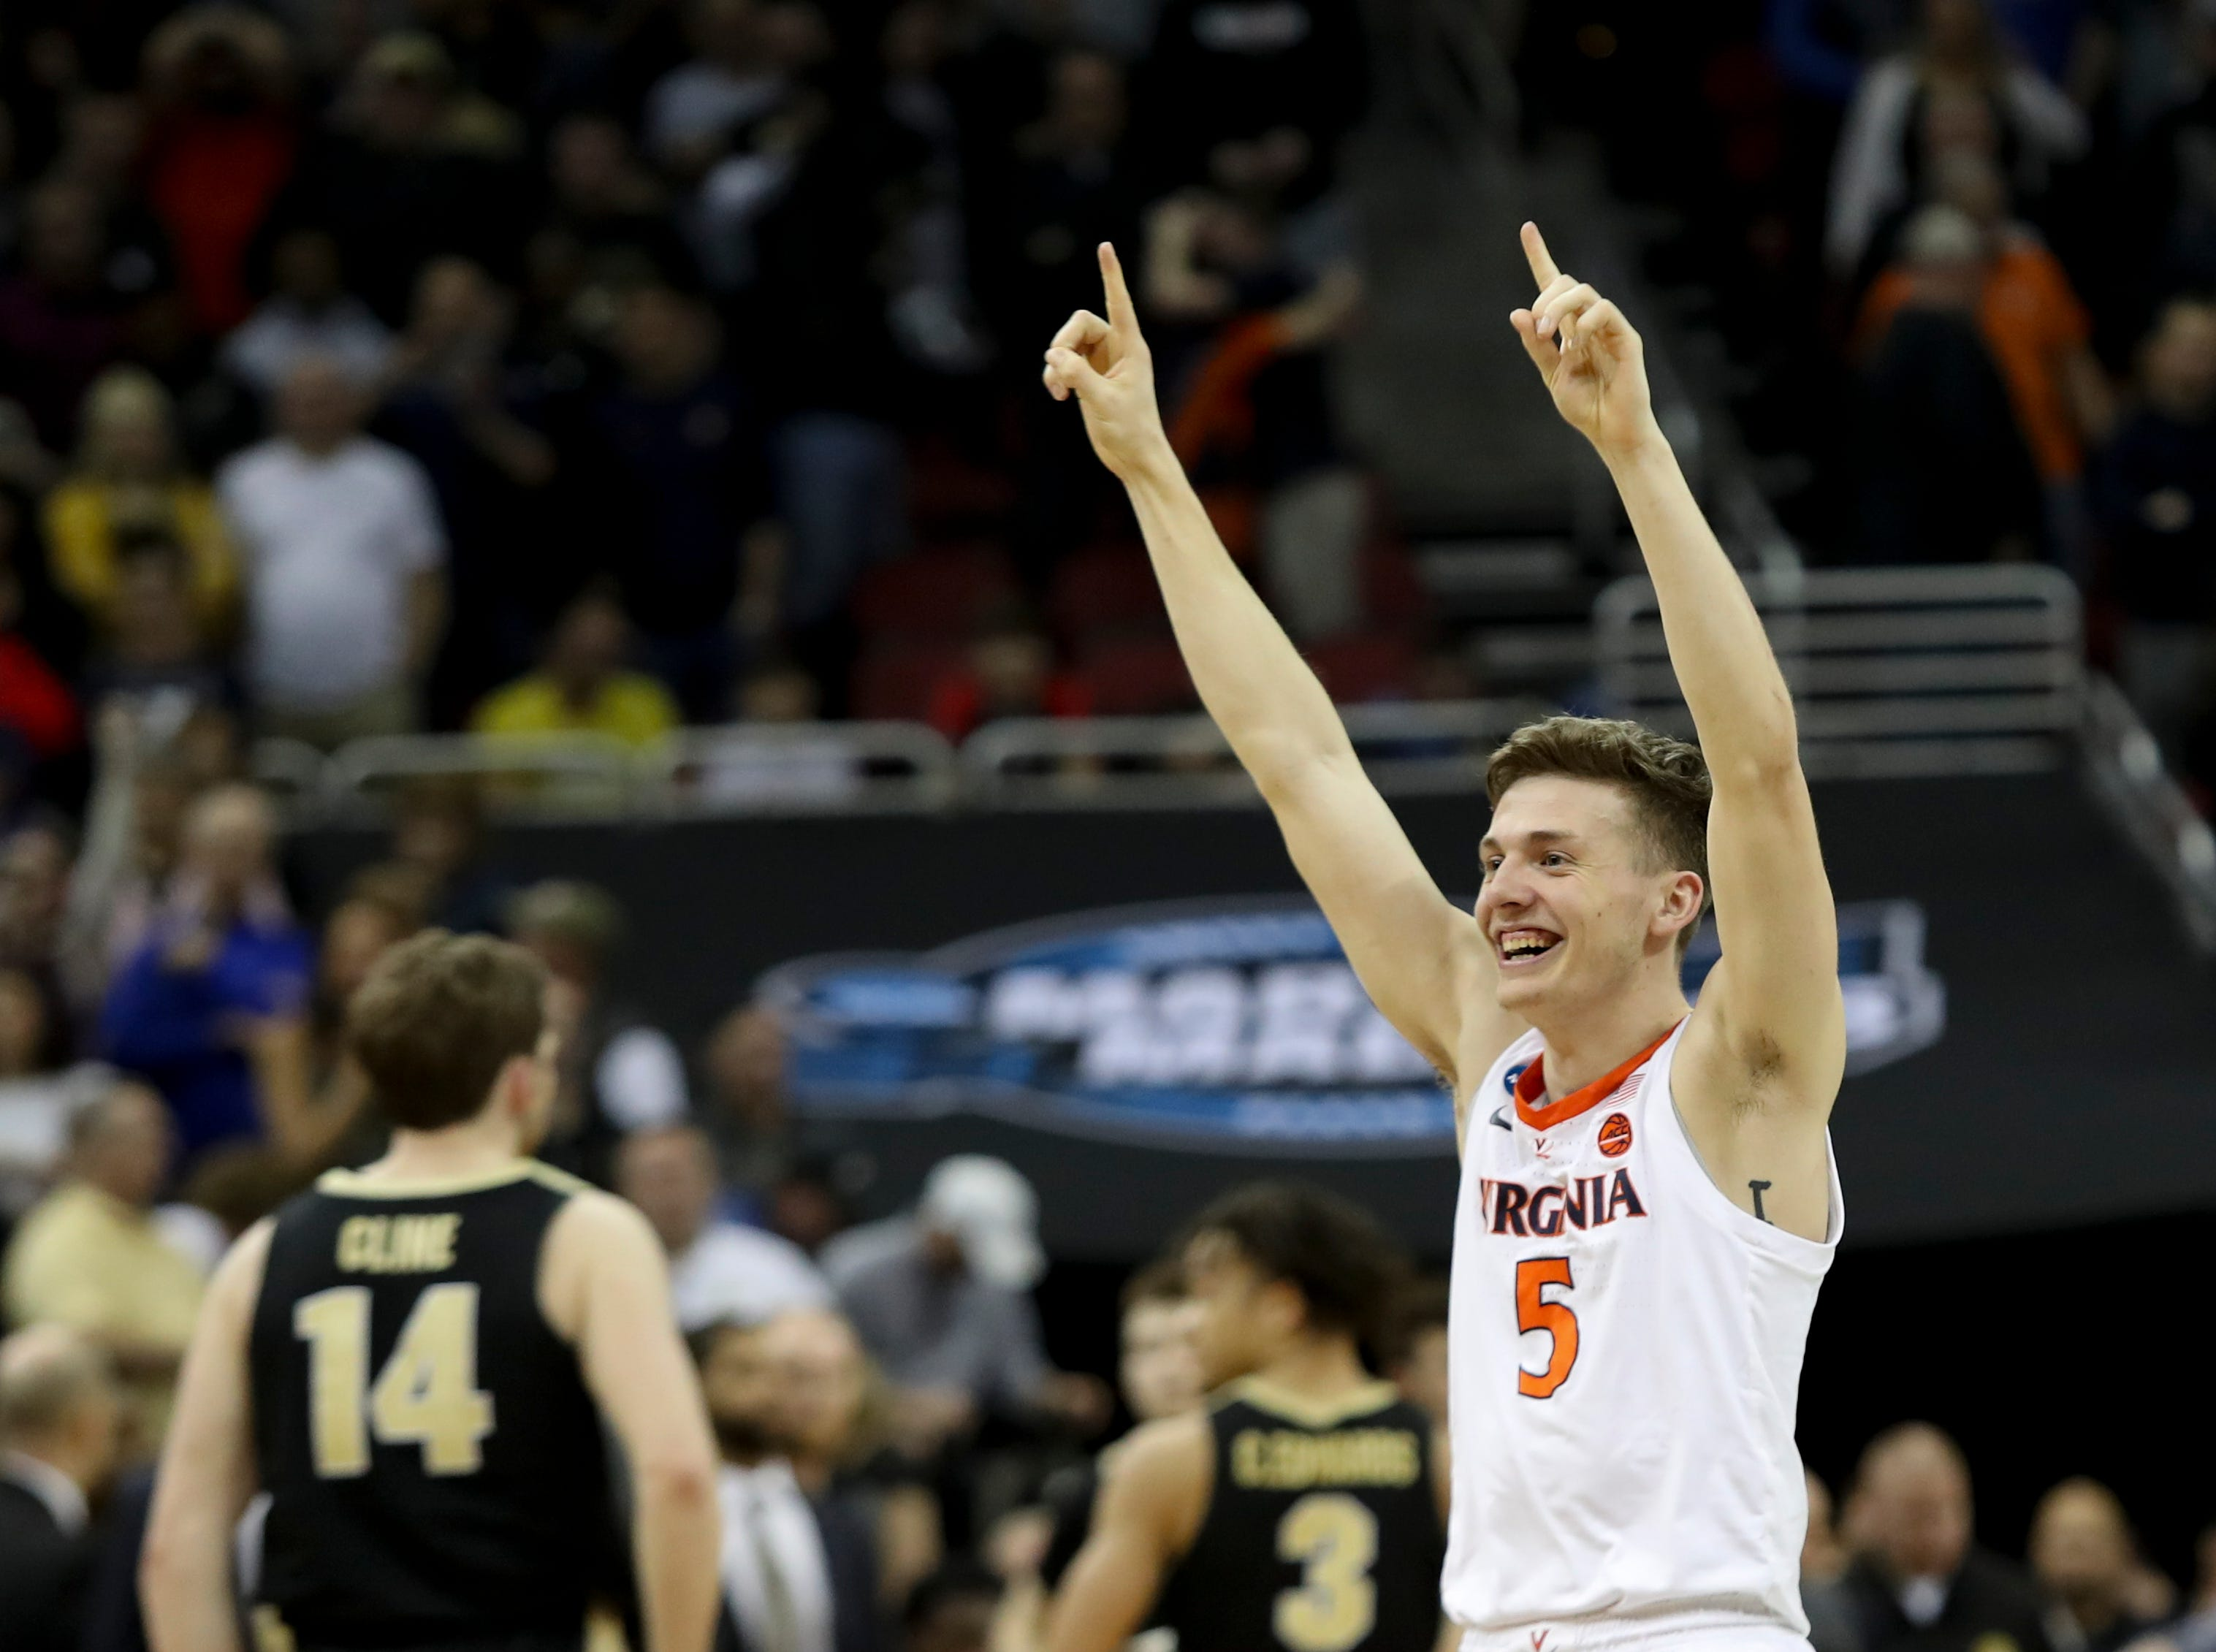 Virginia's Kyle Guy celebrates the Cavaliers' win over Purdue on March 30 to advance to the NCAA Final Four.